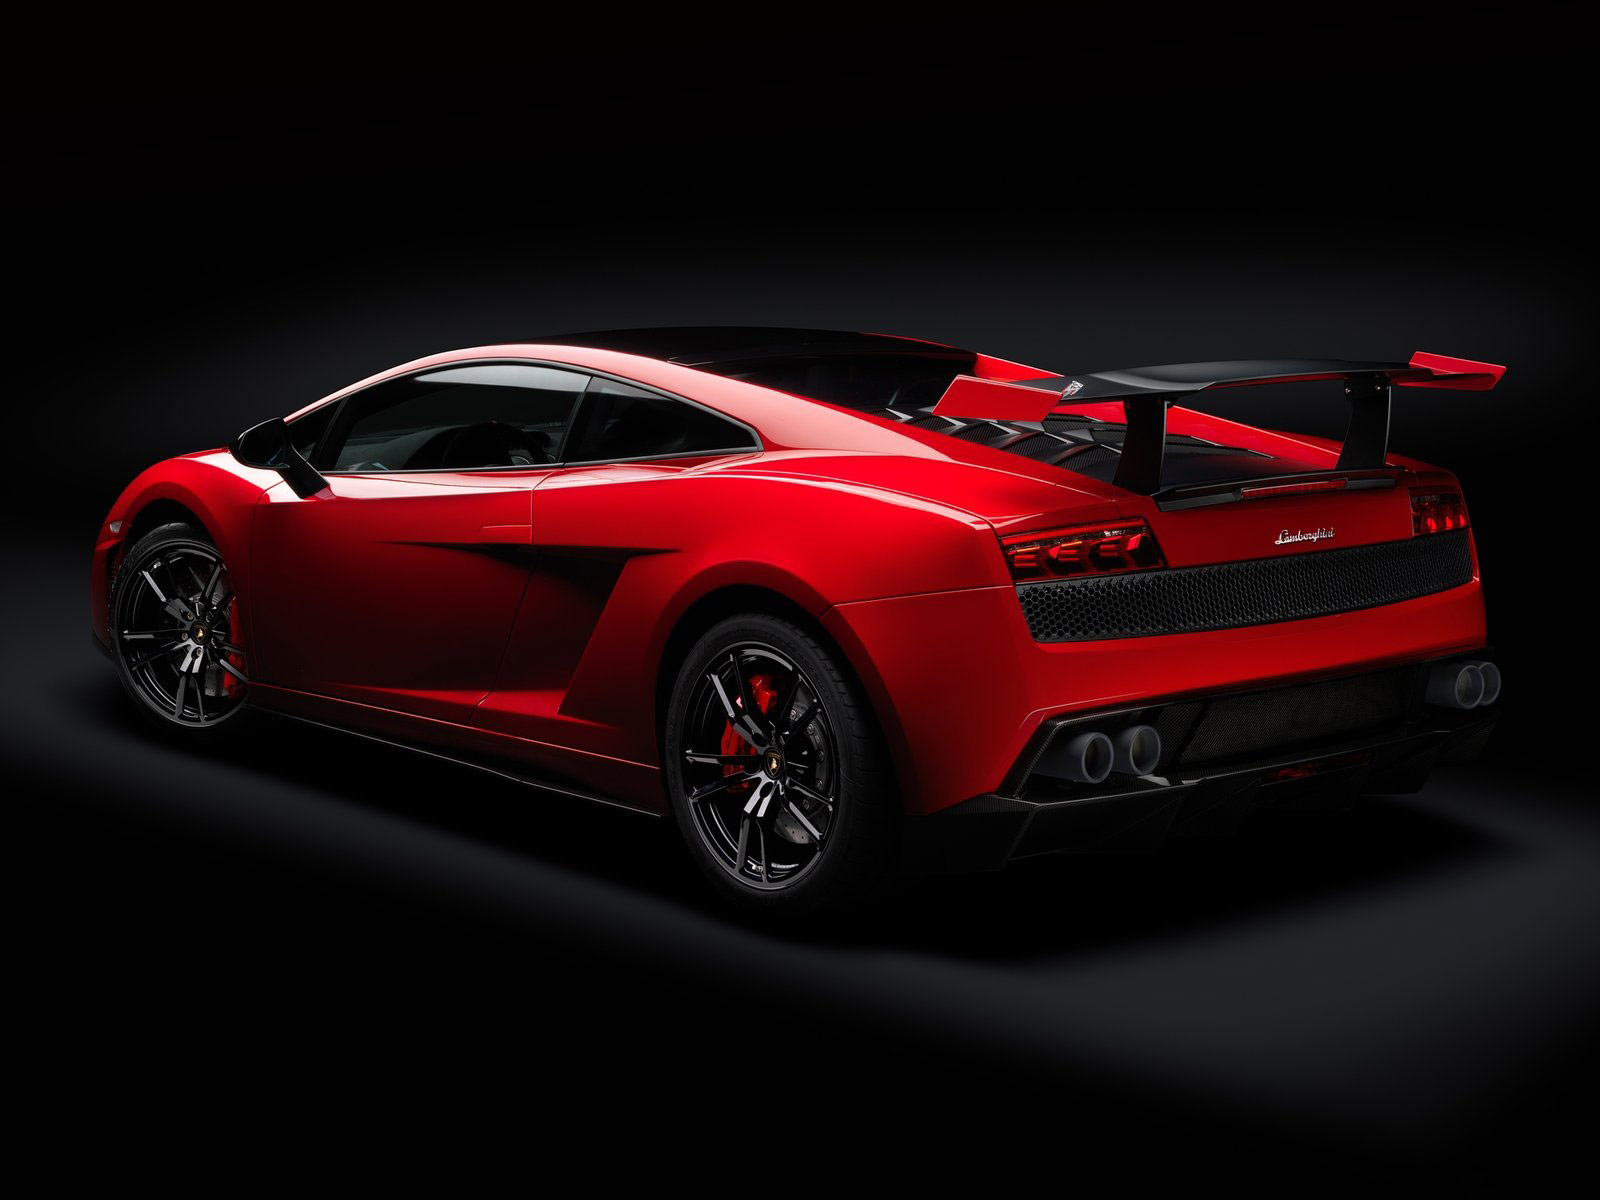 2012 gallardo lp570 4 super trofeo stradale lamborghini pictures. Black Bedroom Furniture Sets. Home Design Ideas